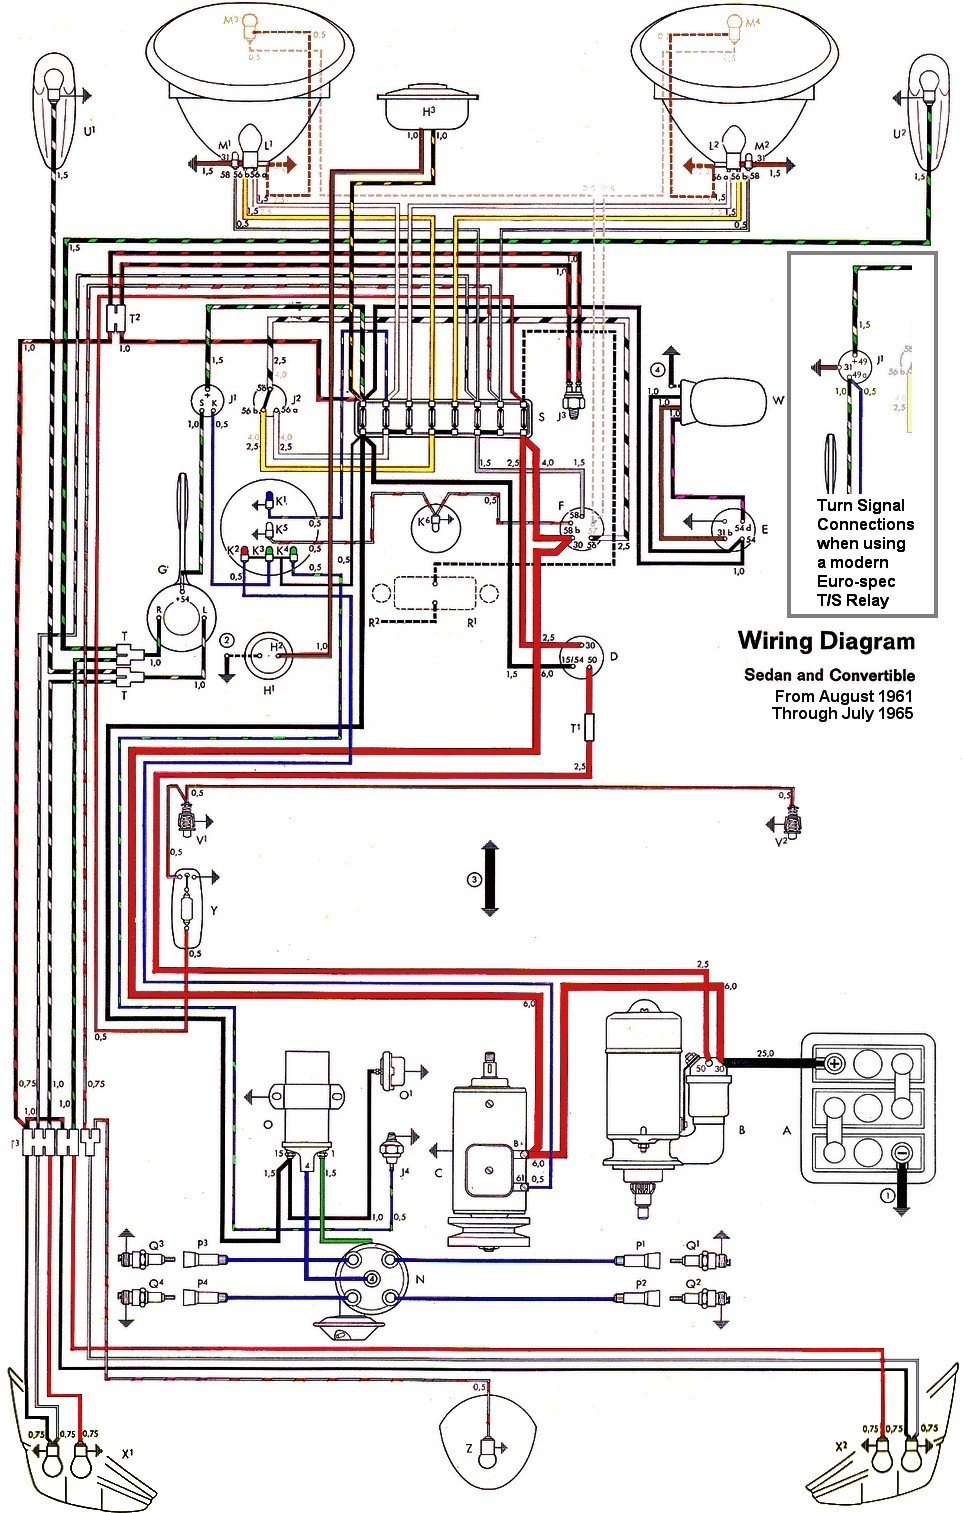 bug_62 65withinset wiring diagram vw beetle sedan and convertible 1961 1965 vw 1968 vw bug headlight wiring diagram at metegol.co